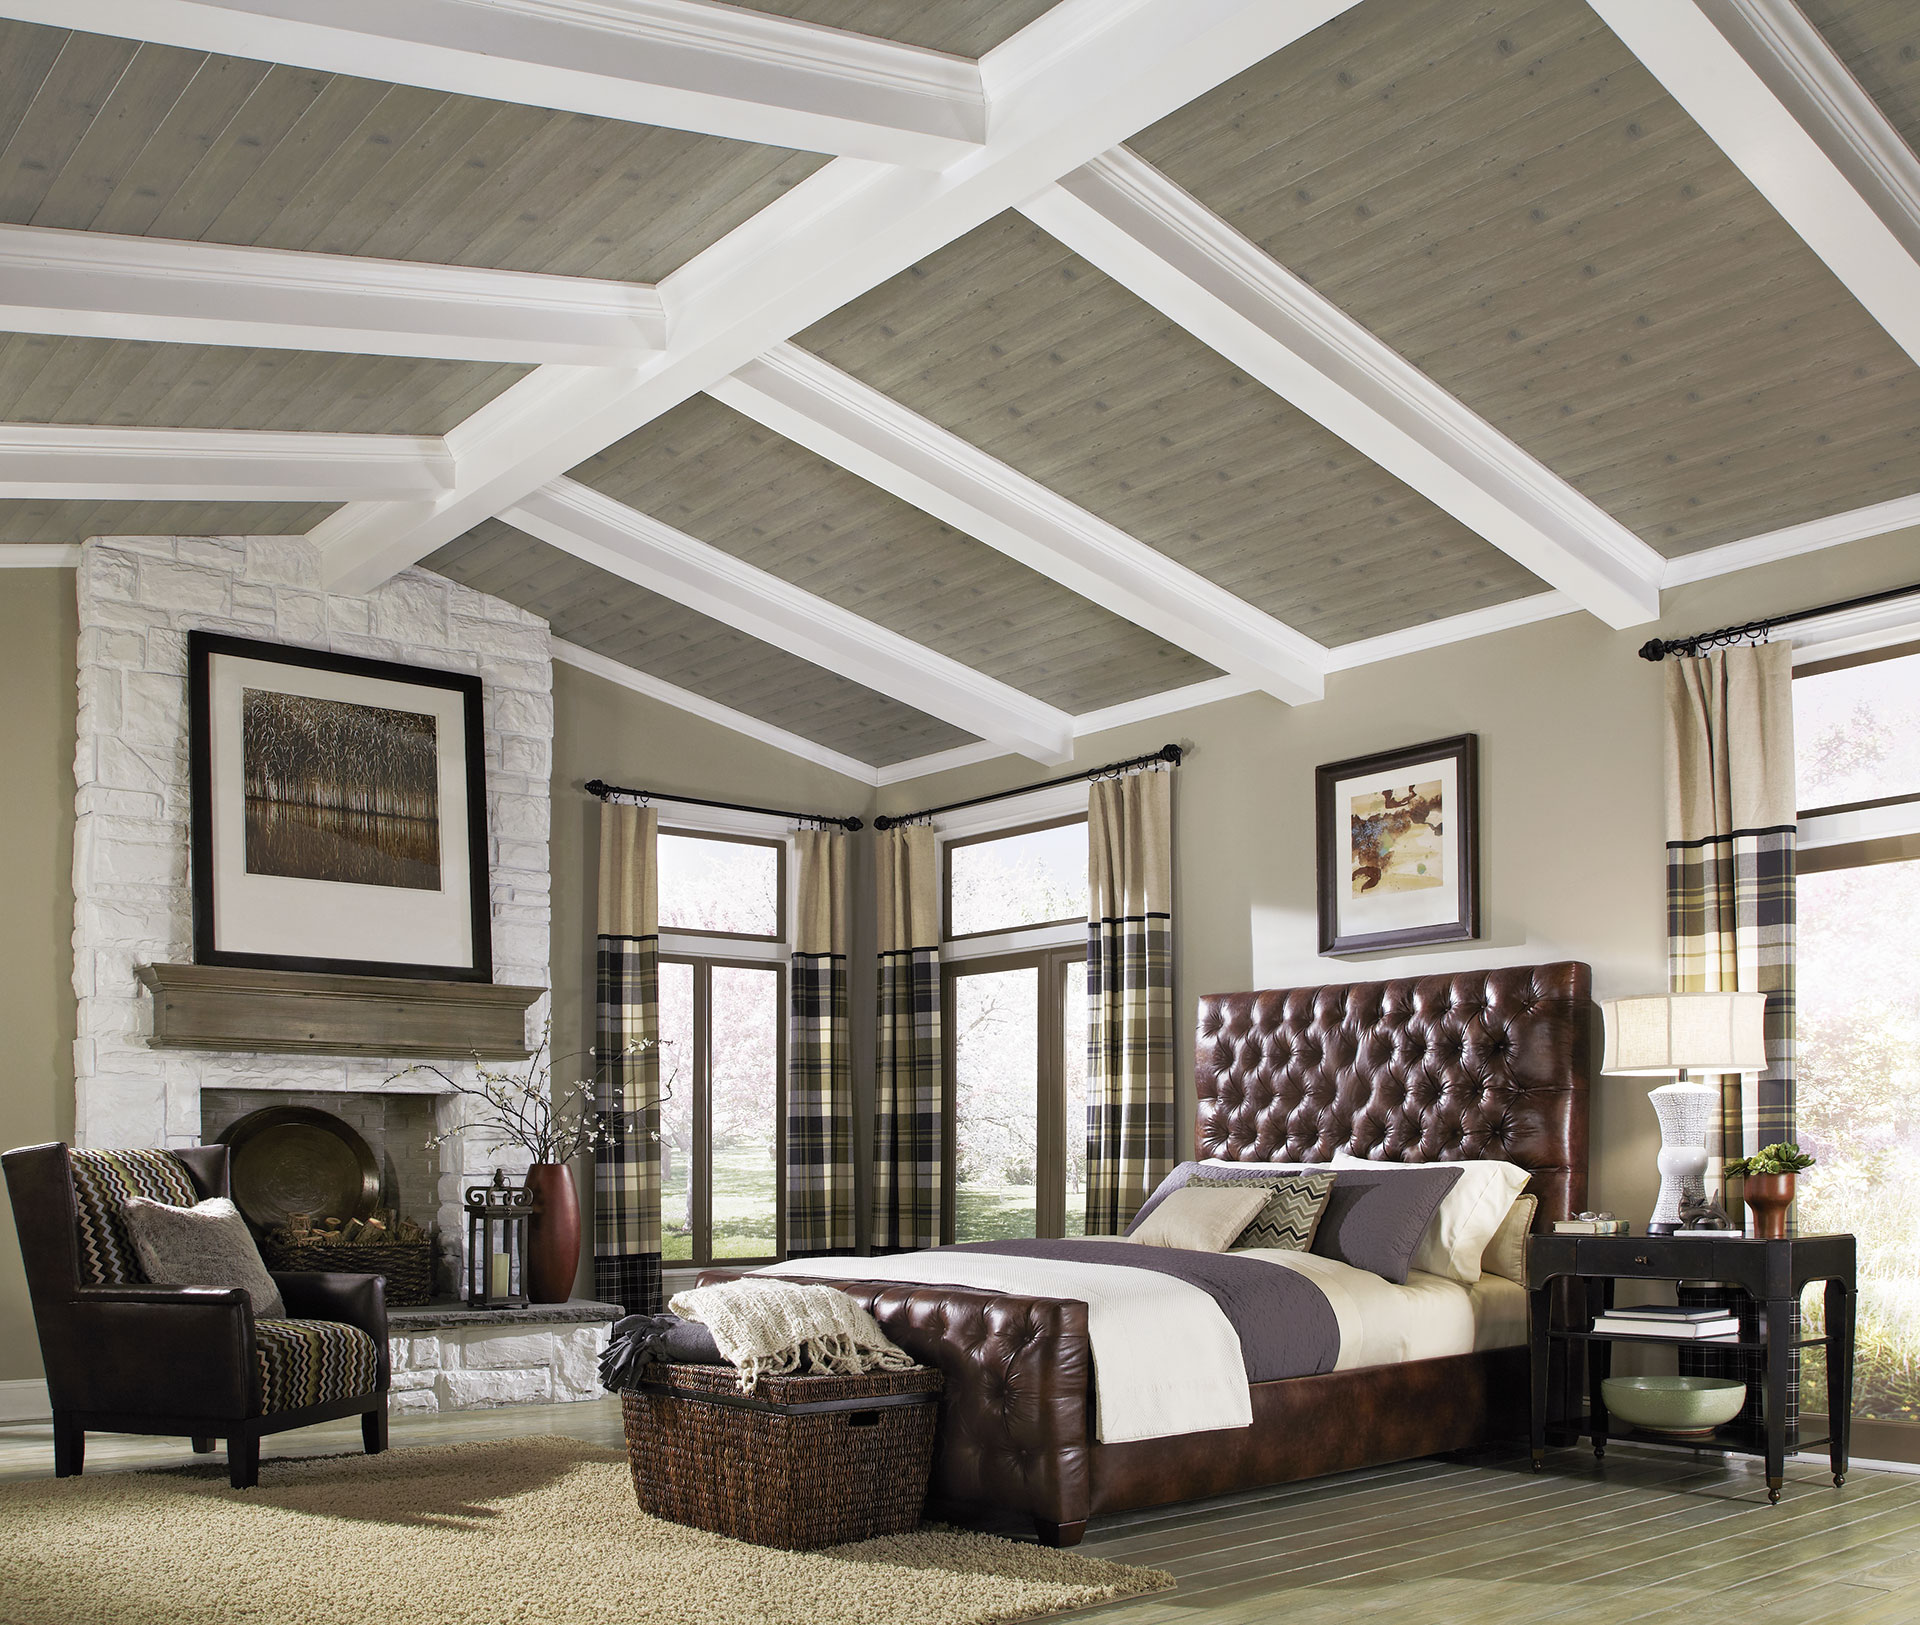 Wonderful 12 X 12 Ceiling Tiles Tall 12X12 Ceiling Tile Replacement Solid 12X24 Floor Tile Patterns 1X1 Ceiling Tiles Old 2 X 2 Ceramic Tile White2 X 4 White Subway Tile Updating An Old Ceiling | Armstrong Ceilings Residential